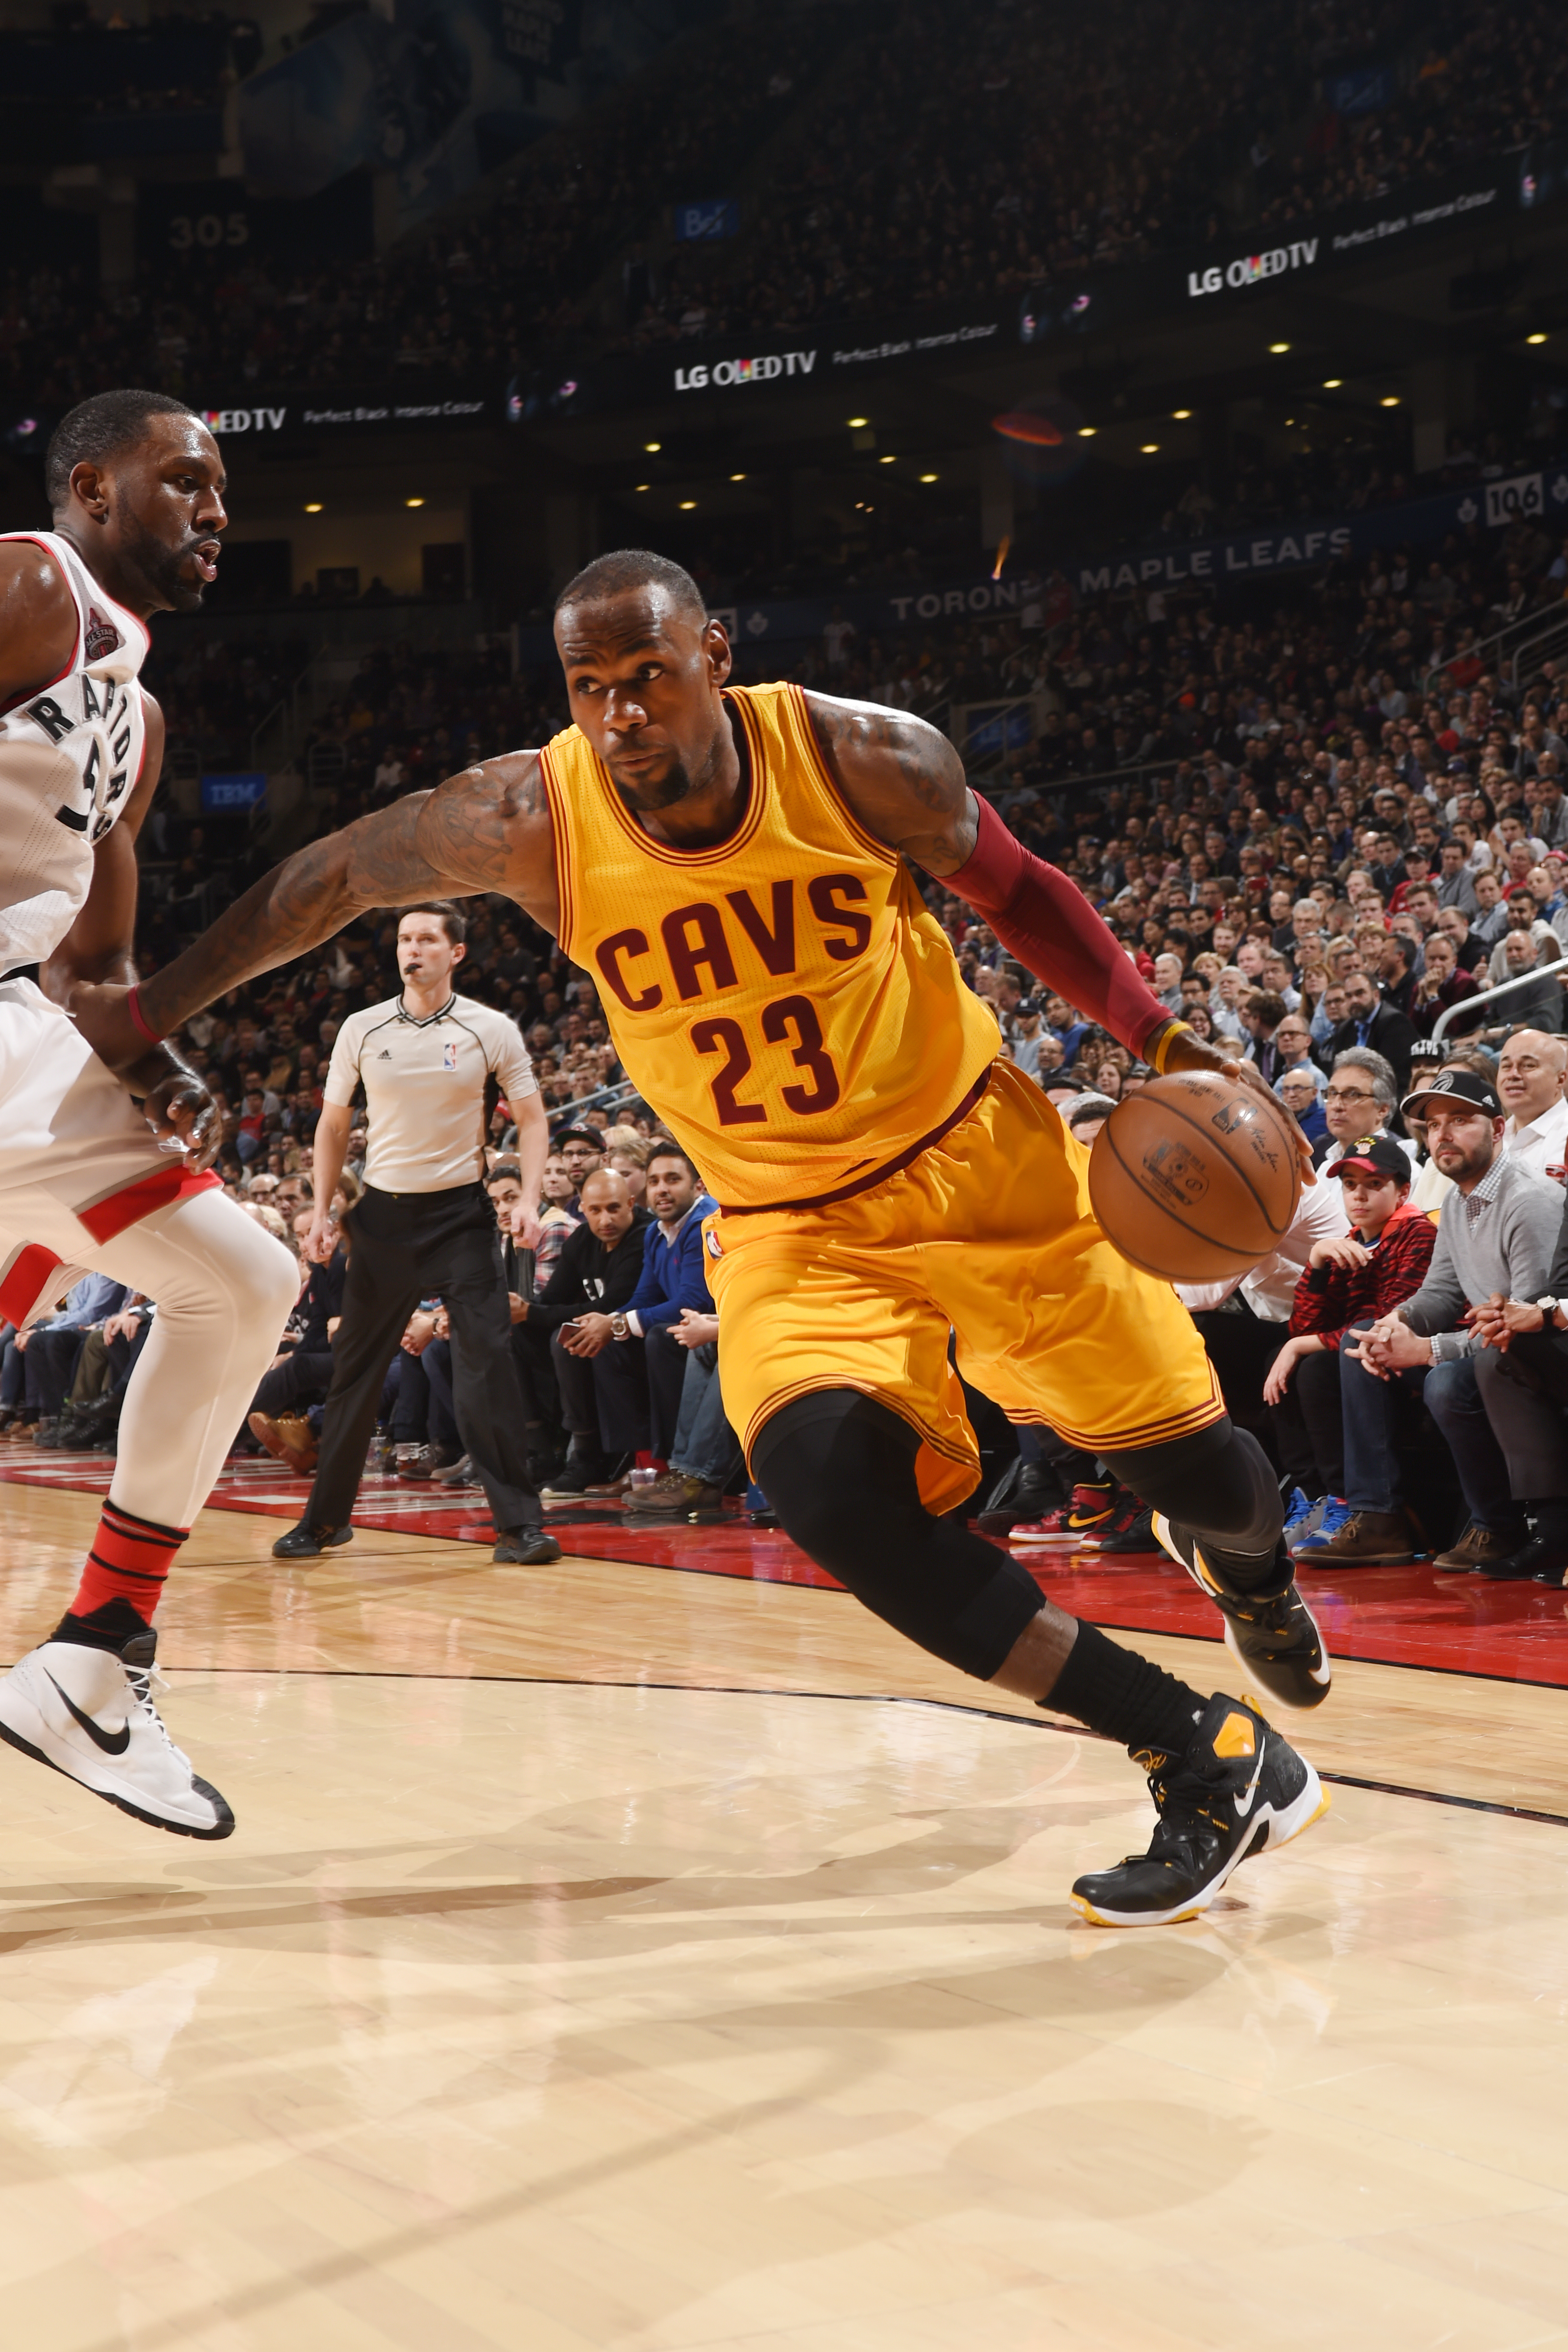 TORONTO, CAN - FEBRUARY 26: LeBron James #23 of the Cleveland Cavaliers drives to the basket against the Toronto Raptors during the game on February 26, 2016 at Air Canada Centre in Toronto, Canada. (Photo by Ron Turenne/NBAE via Getty Images)